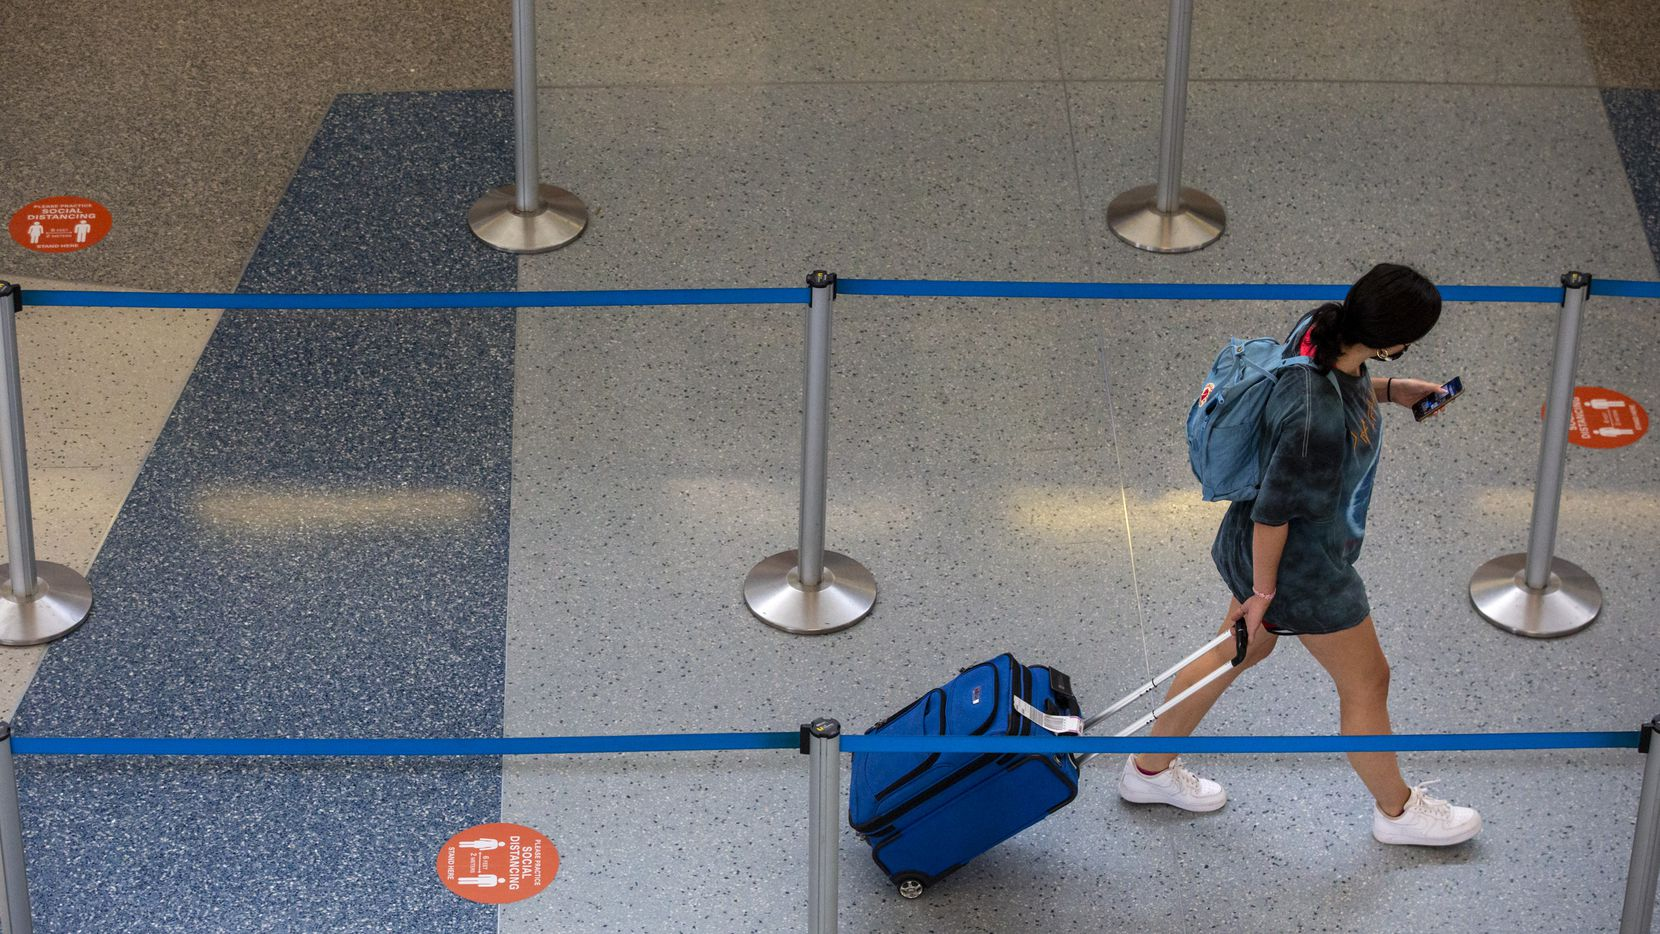 A passenger walks past social distancing markers in Terminal D at DFW International Airport.